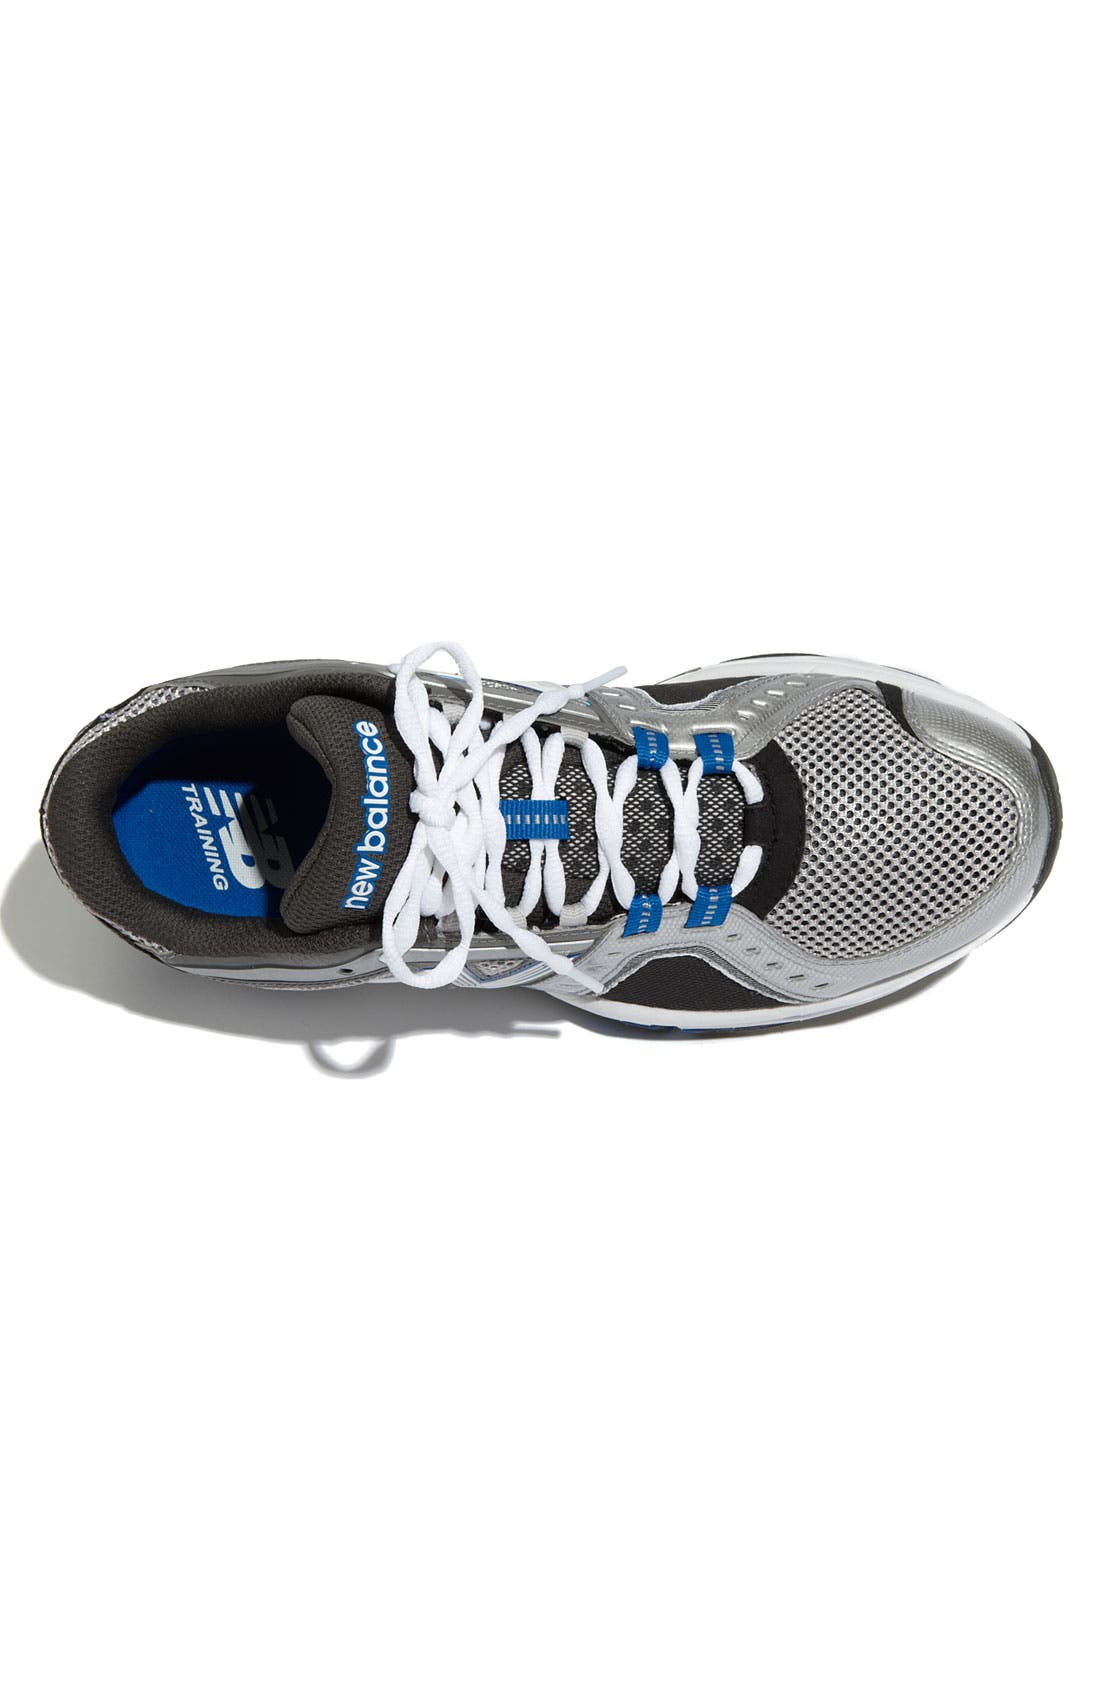 Alternate Image 3  - New Balance '1211' Training Shoe (Men) (Online Only)